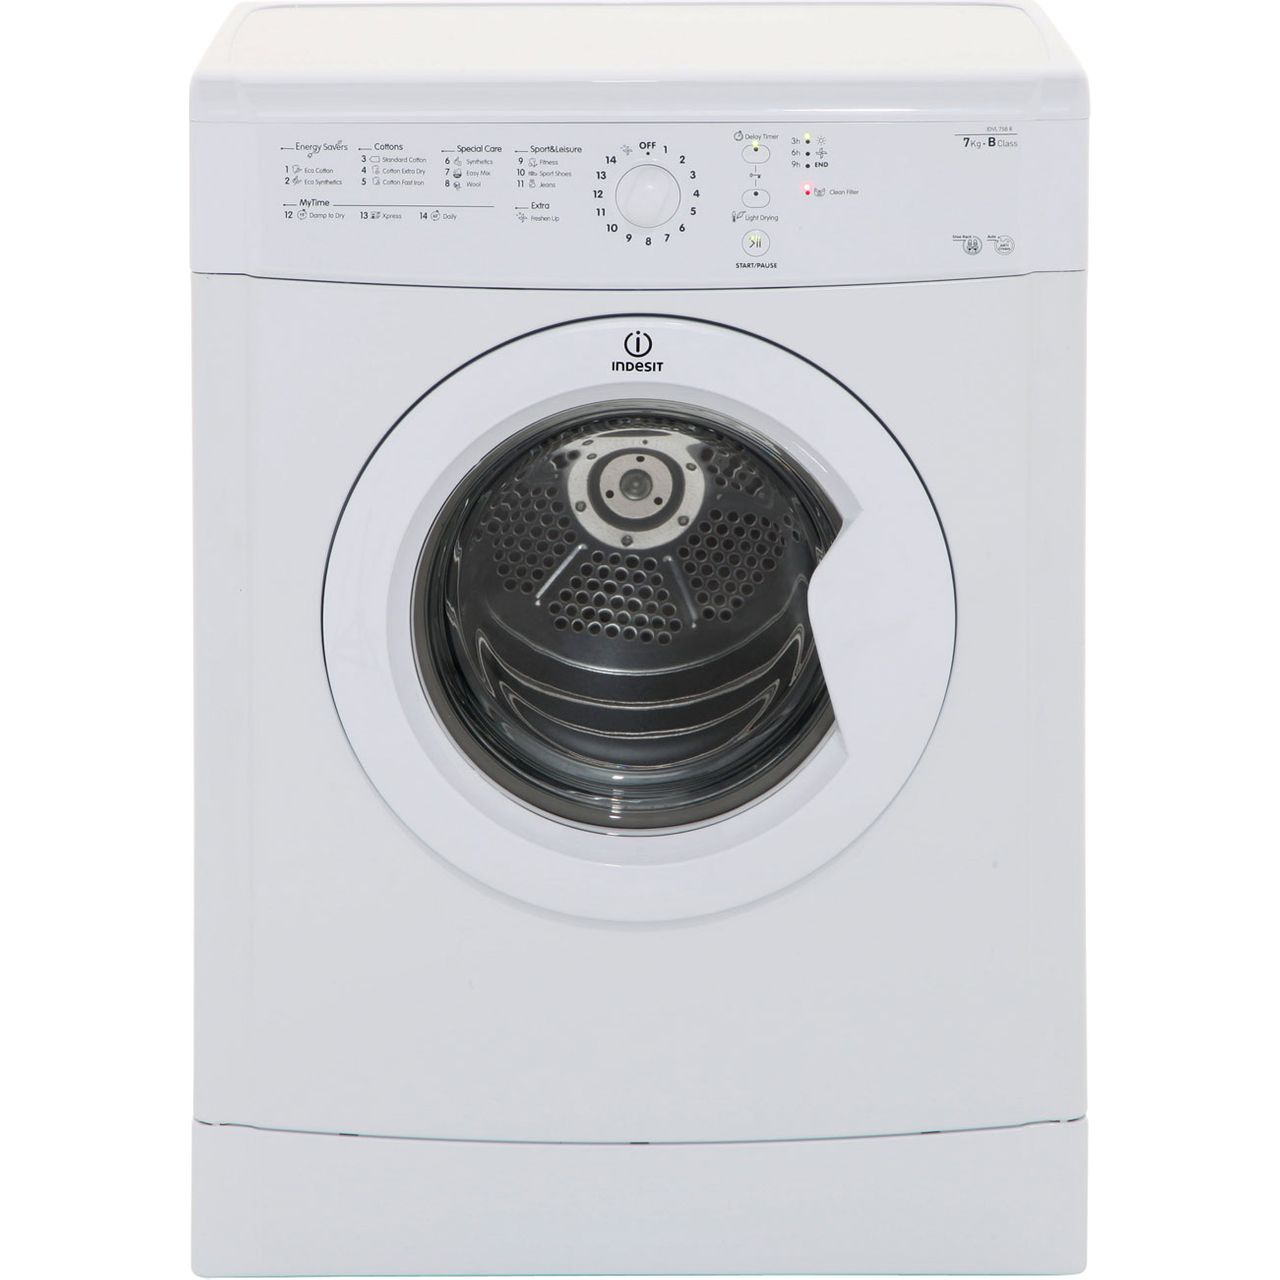 Indesit IDVL75BR Free Standing Vented Tumble Dryer in White